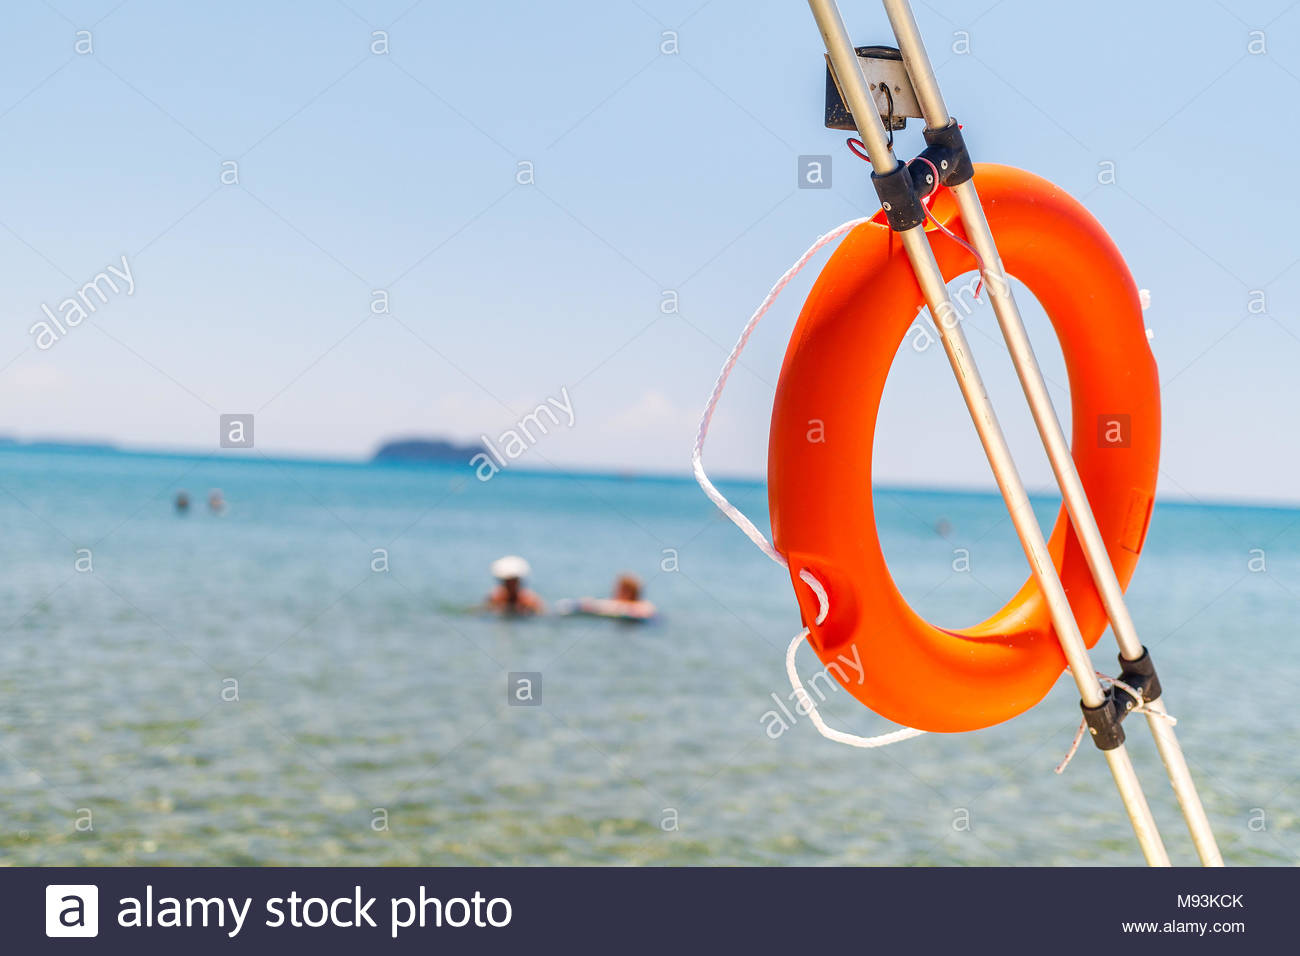 Life Support Equipment Stock Photos Life Support Equipment Stock Images Alamy